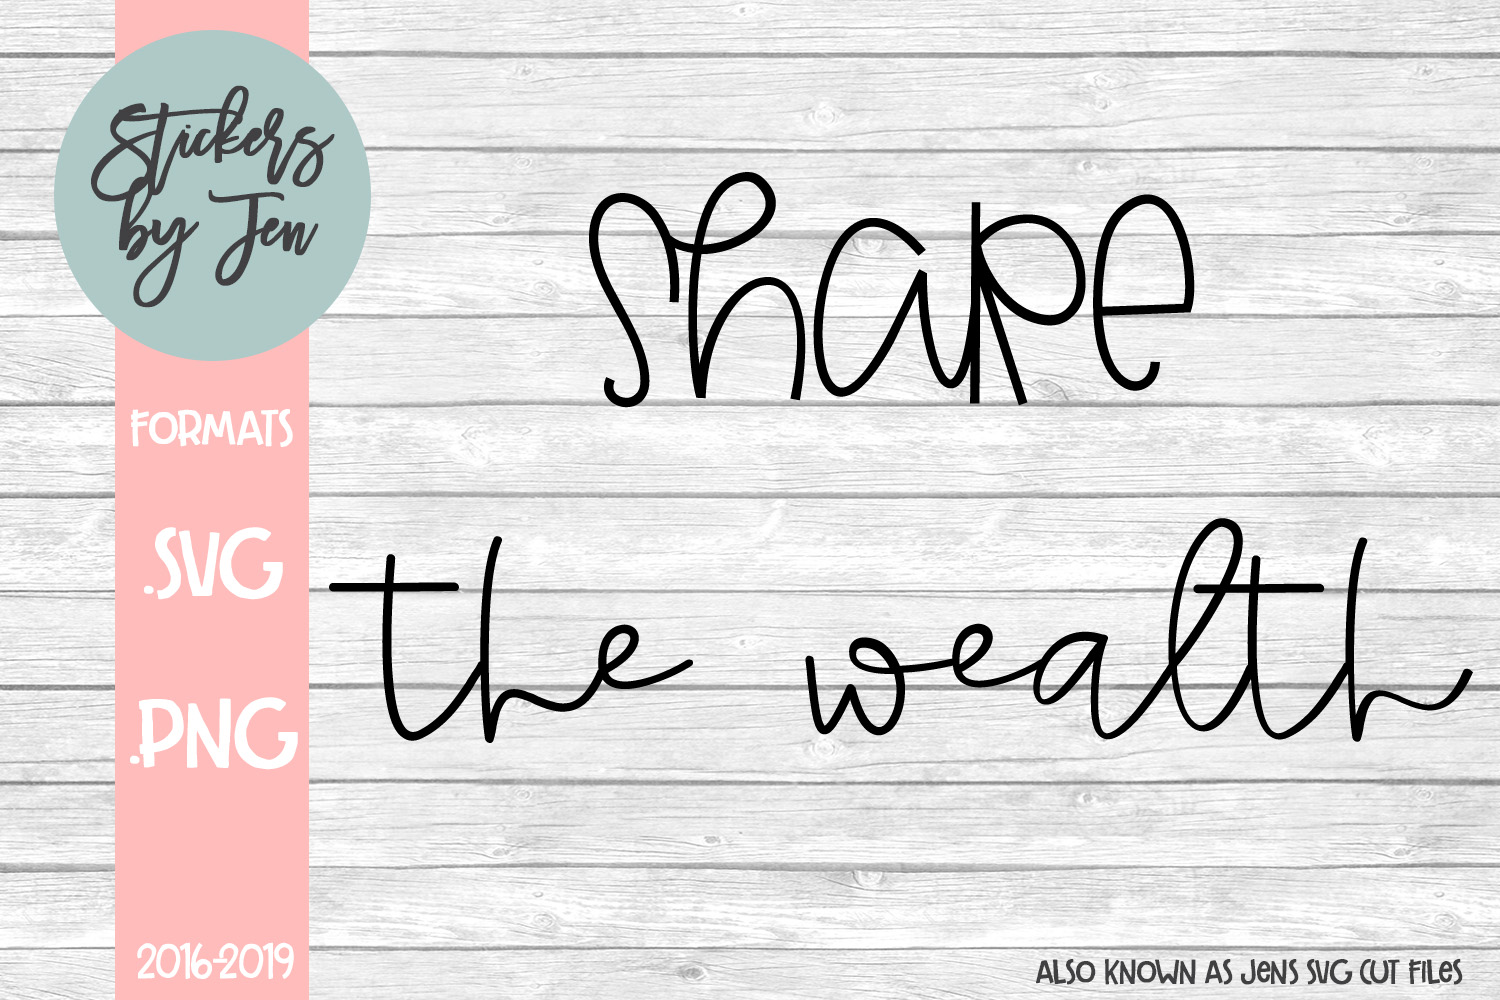 Download Free Share The Wealth Graphic By Stickers By Jennifer Creative Fabrica for Cricut Explore, Silhouette and other cutting machines.